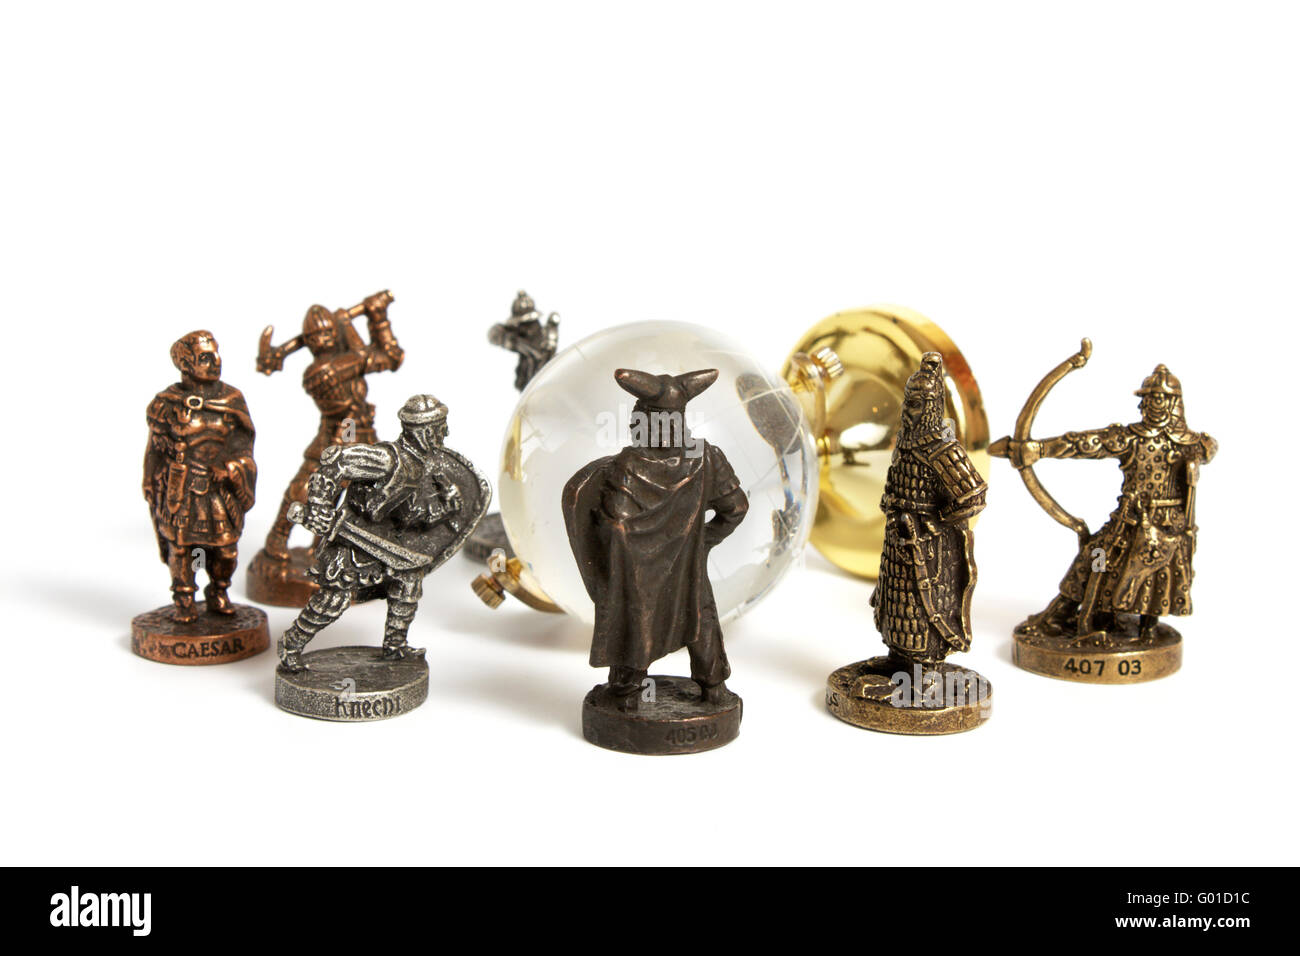 metal figurines of ancient warriors around glass globe isolated on  - stock photo  metal figurines of ancient warriors around glass globeisolated on white concept of military history